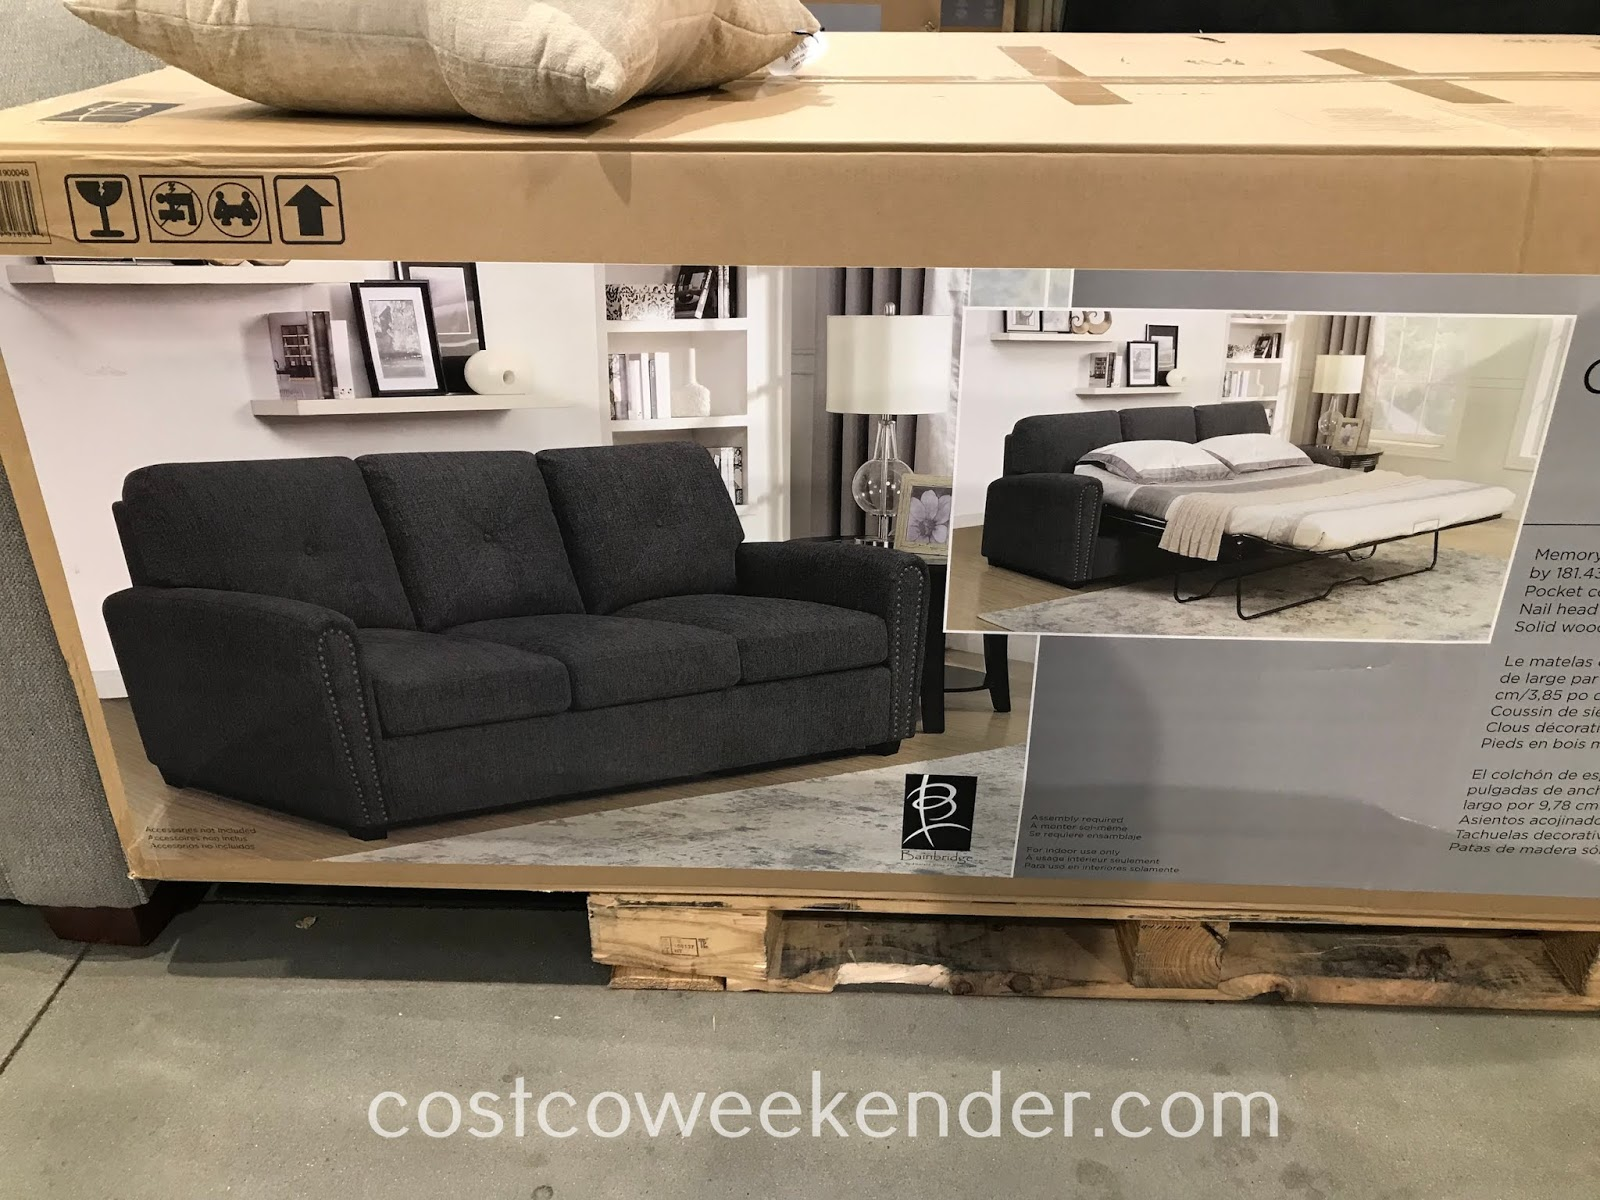 - Bainbridge Fabric Sleeper Sofa Costco Weekender